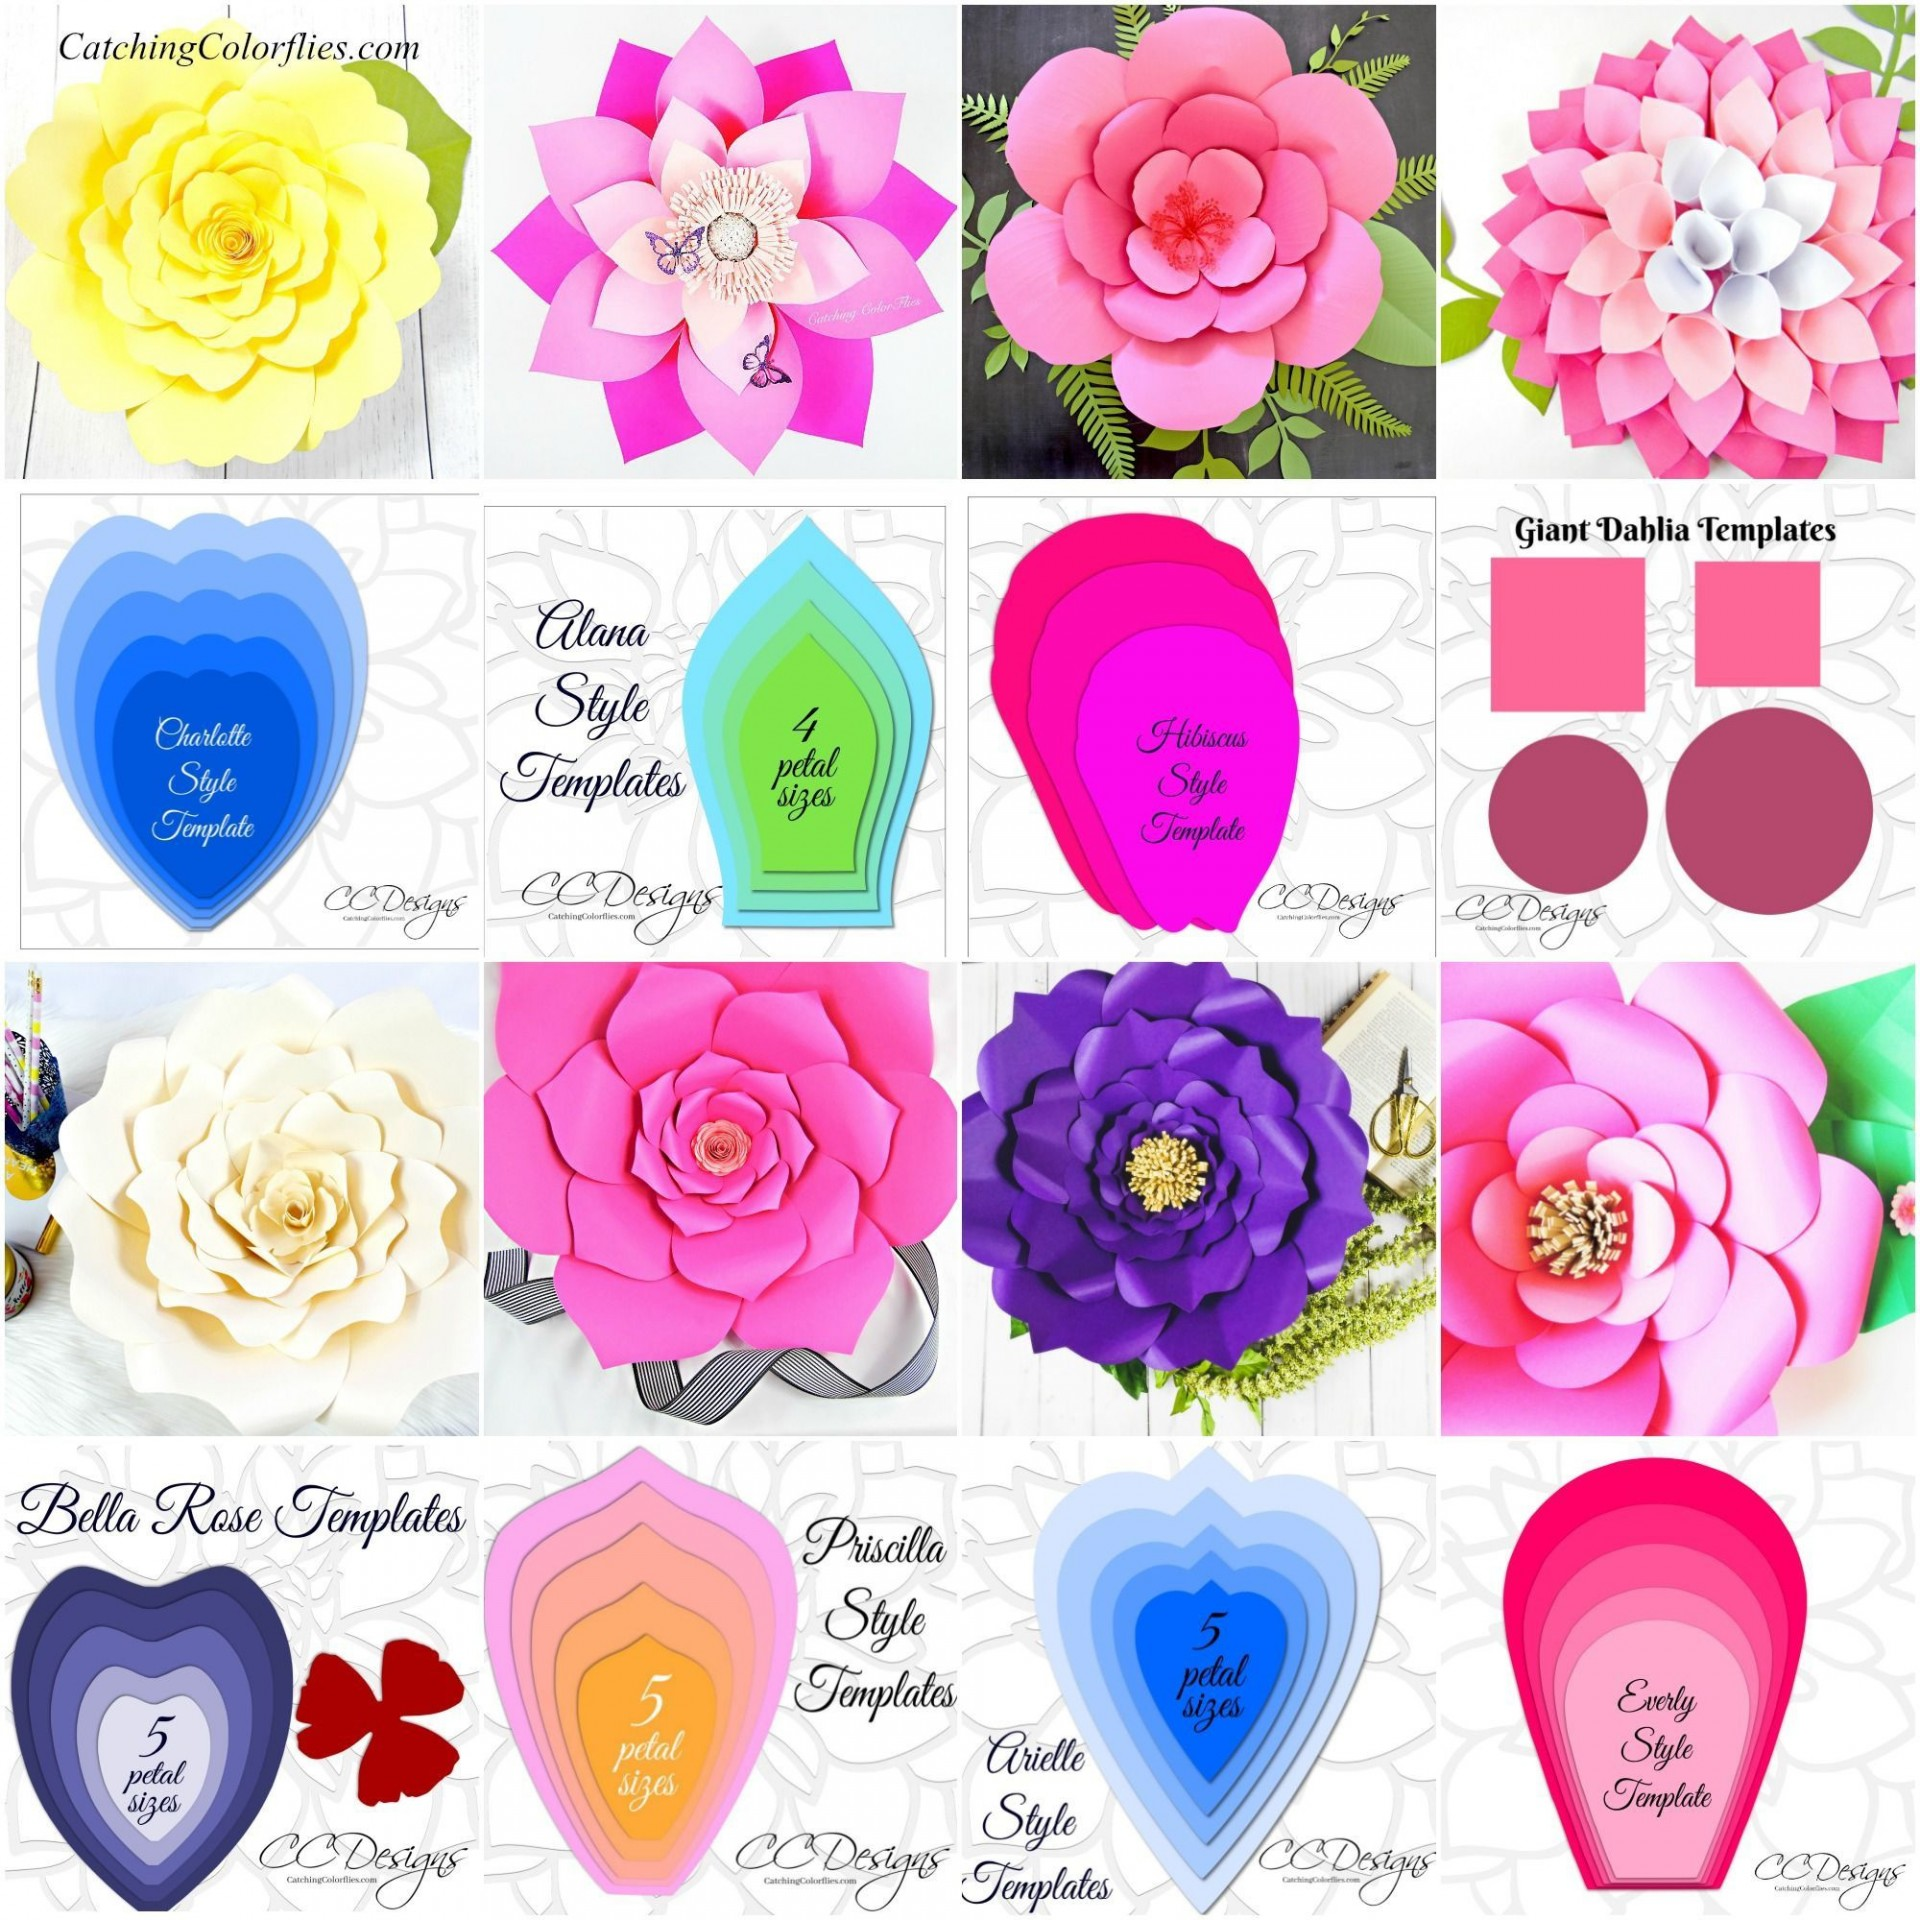 007 Striking Giant Rose Paper Flower Template Free Image 1920